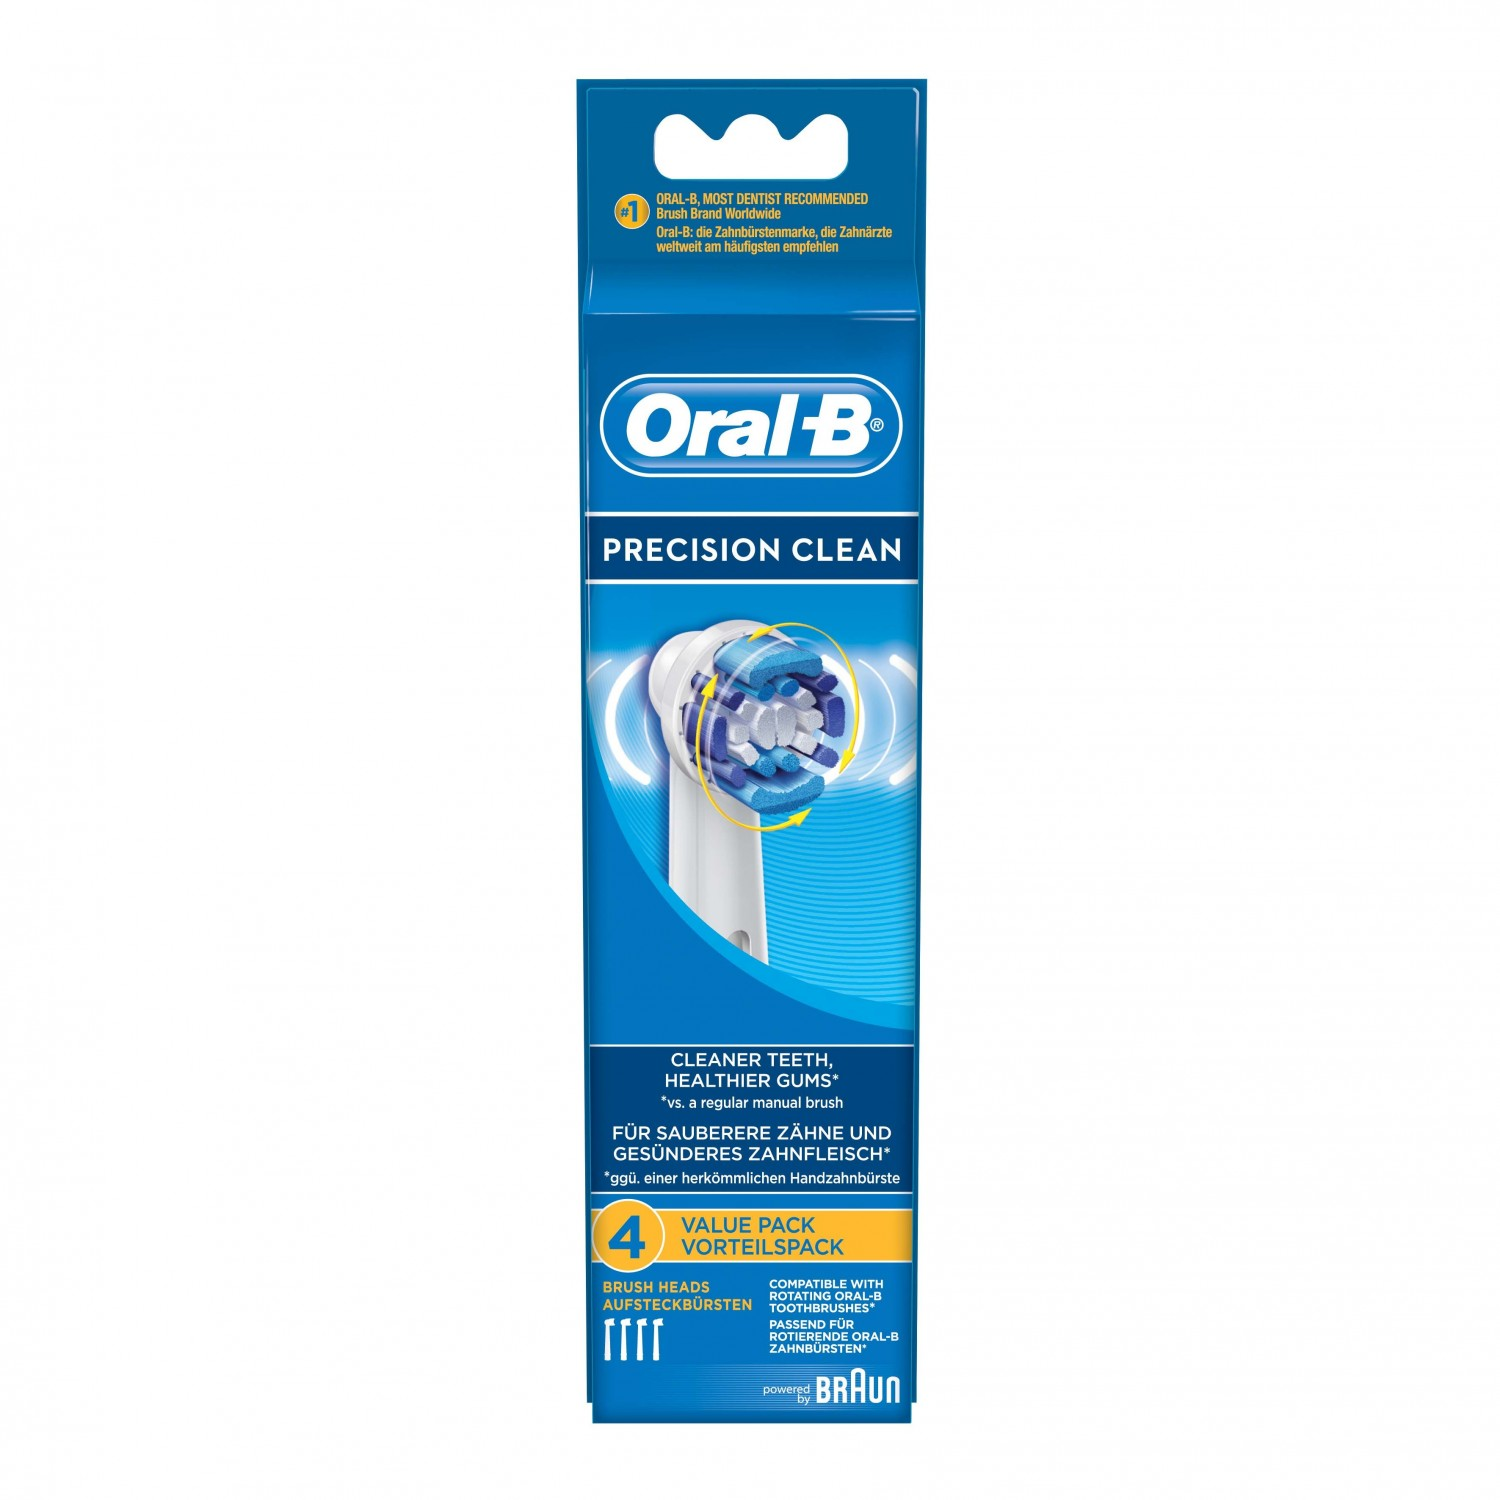 Oral B recambio cepillo dental electrico precision clean por 4 unidades